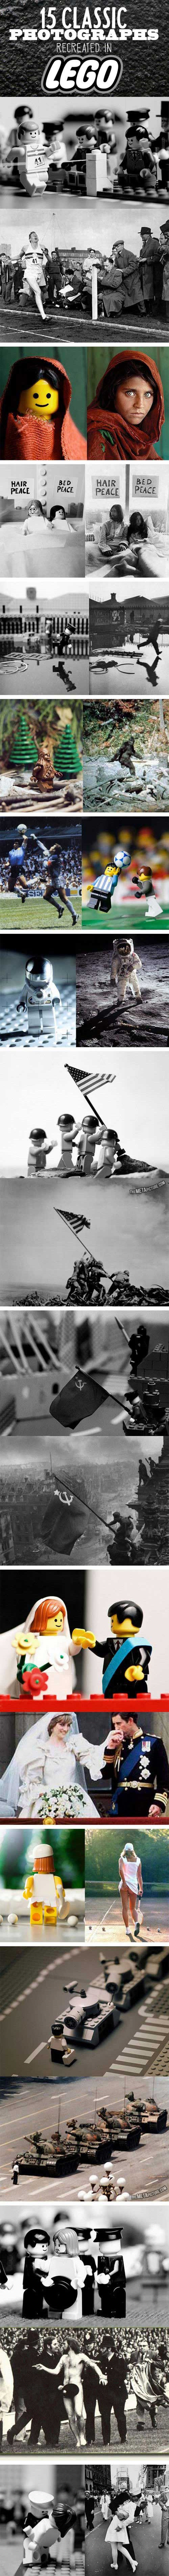 Classic pics recreated in Lego. Cool (except there are only 4 Legomen raising the flag when there should be 5; my history nerdliness won't let this go unmentioned).